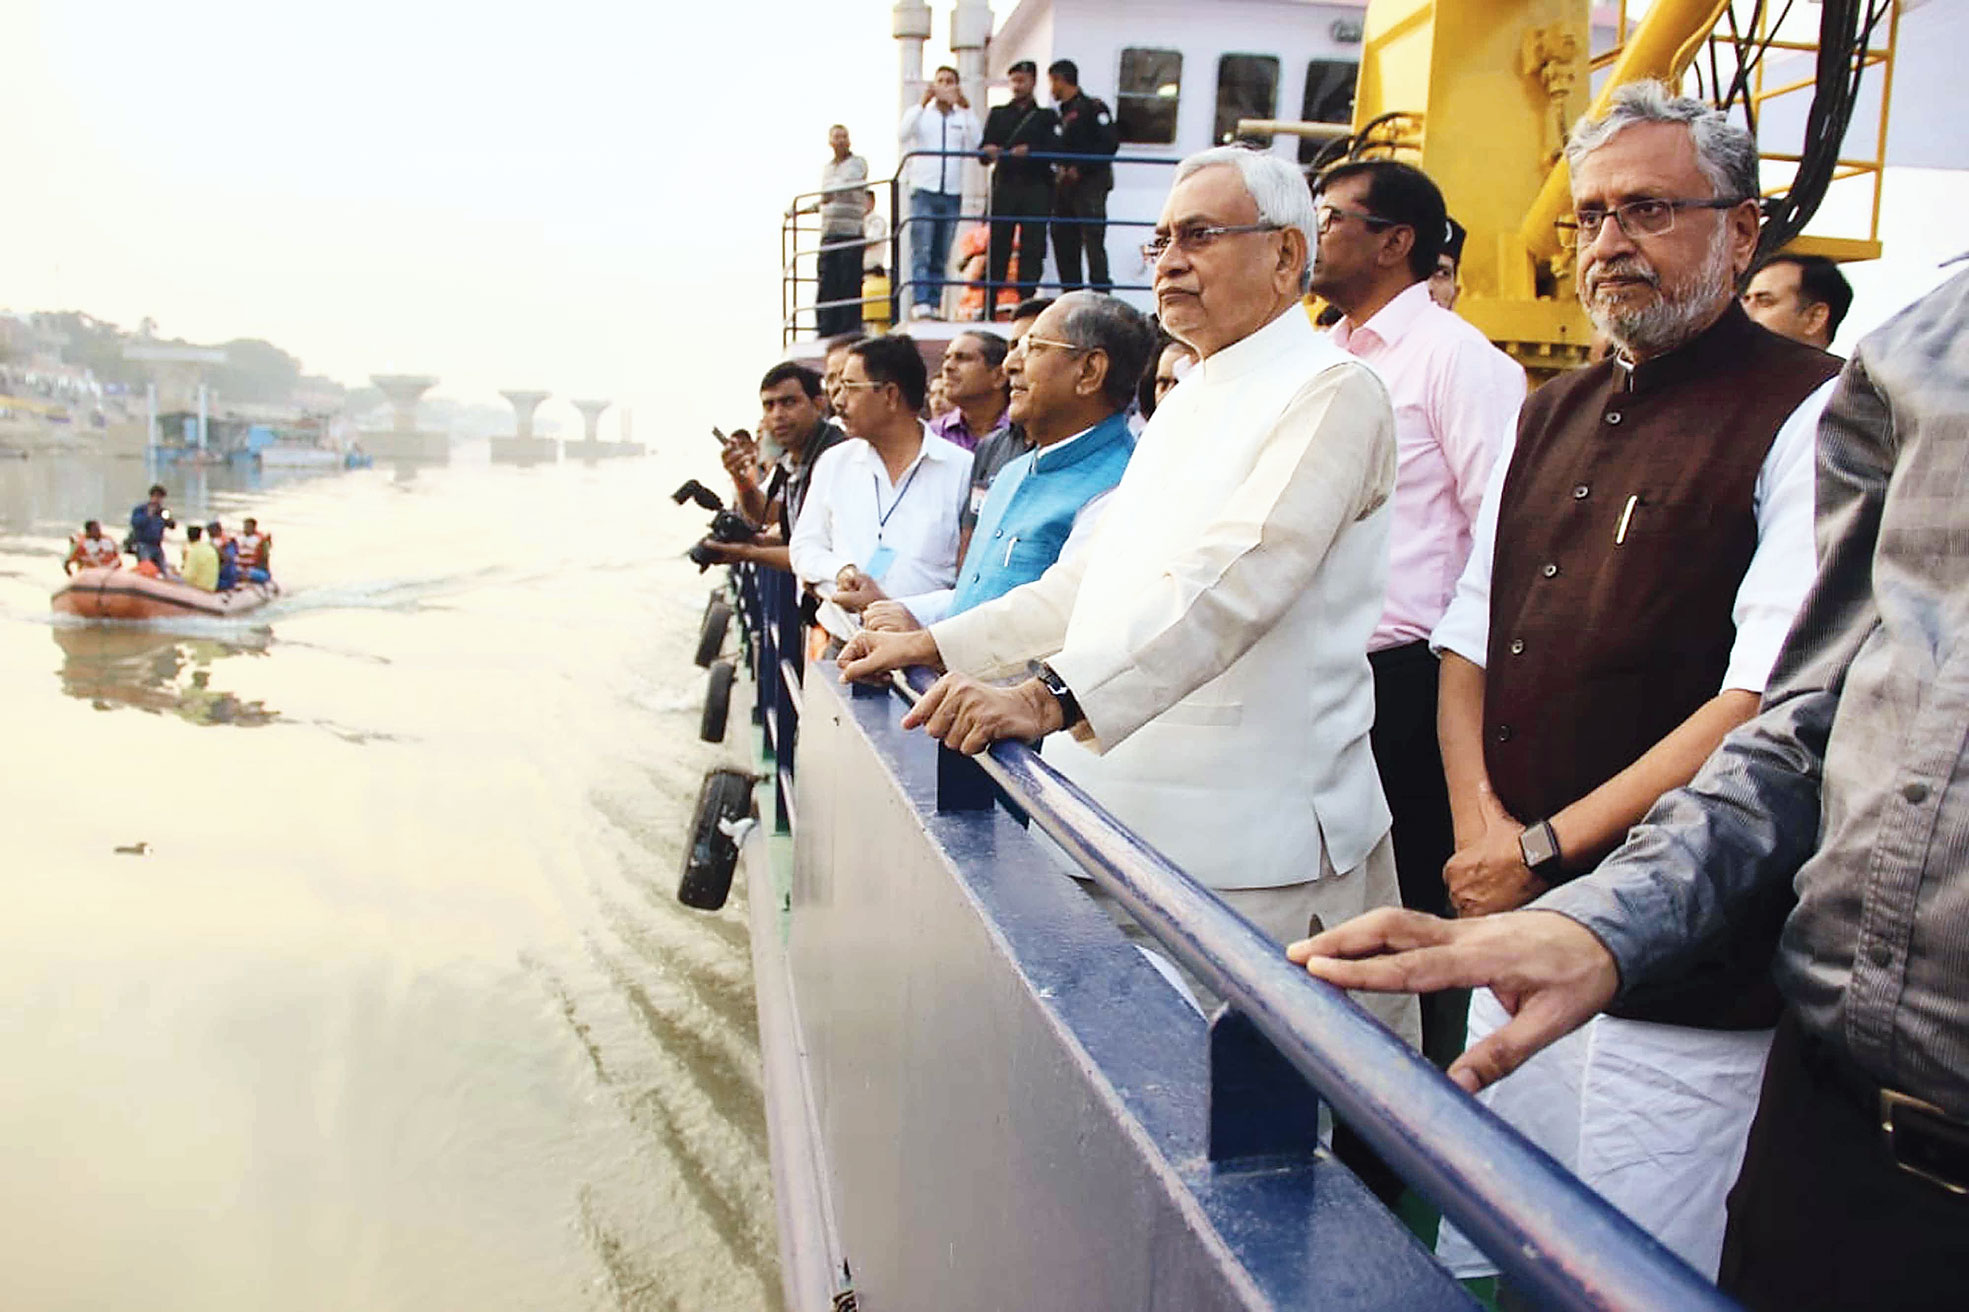 Chief minister Nitish Kumar inspects a Ganga ghat in Patna on Thursday.